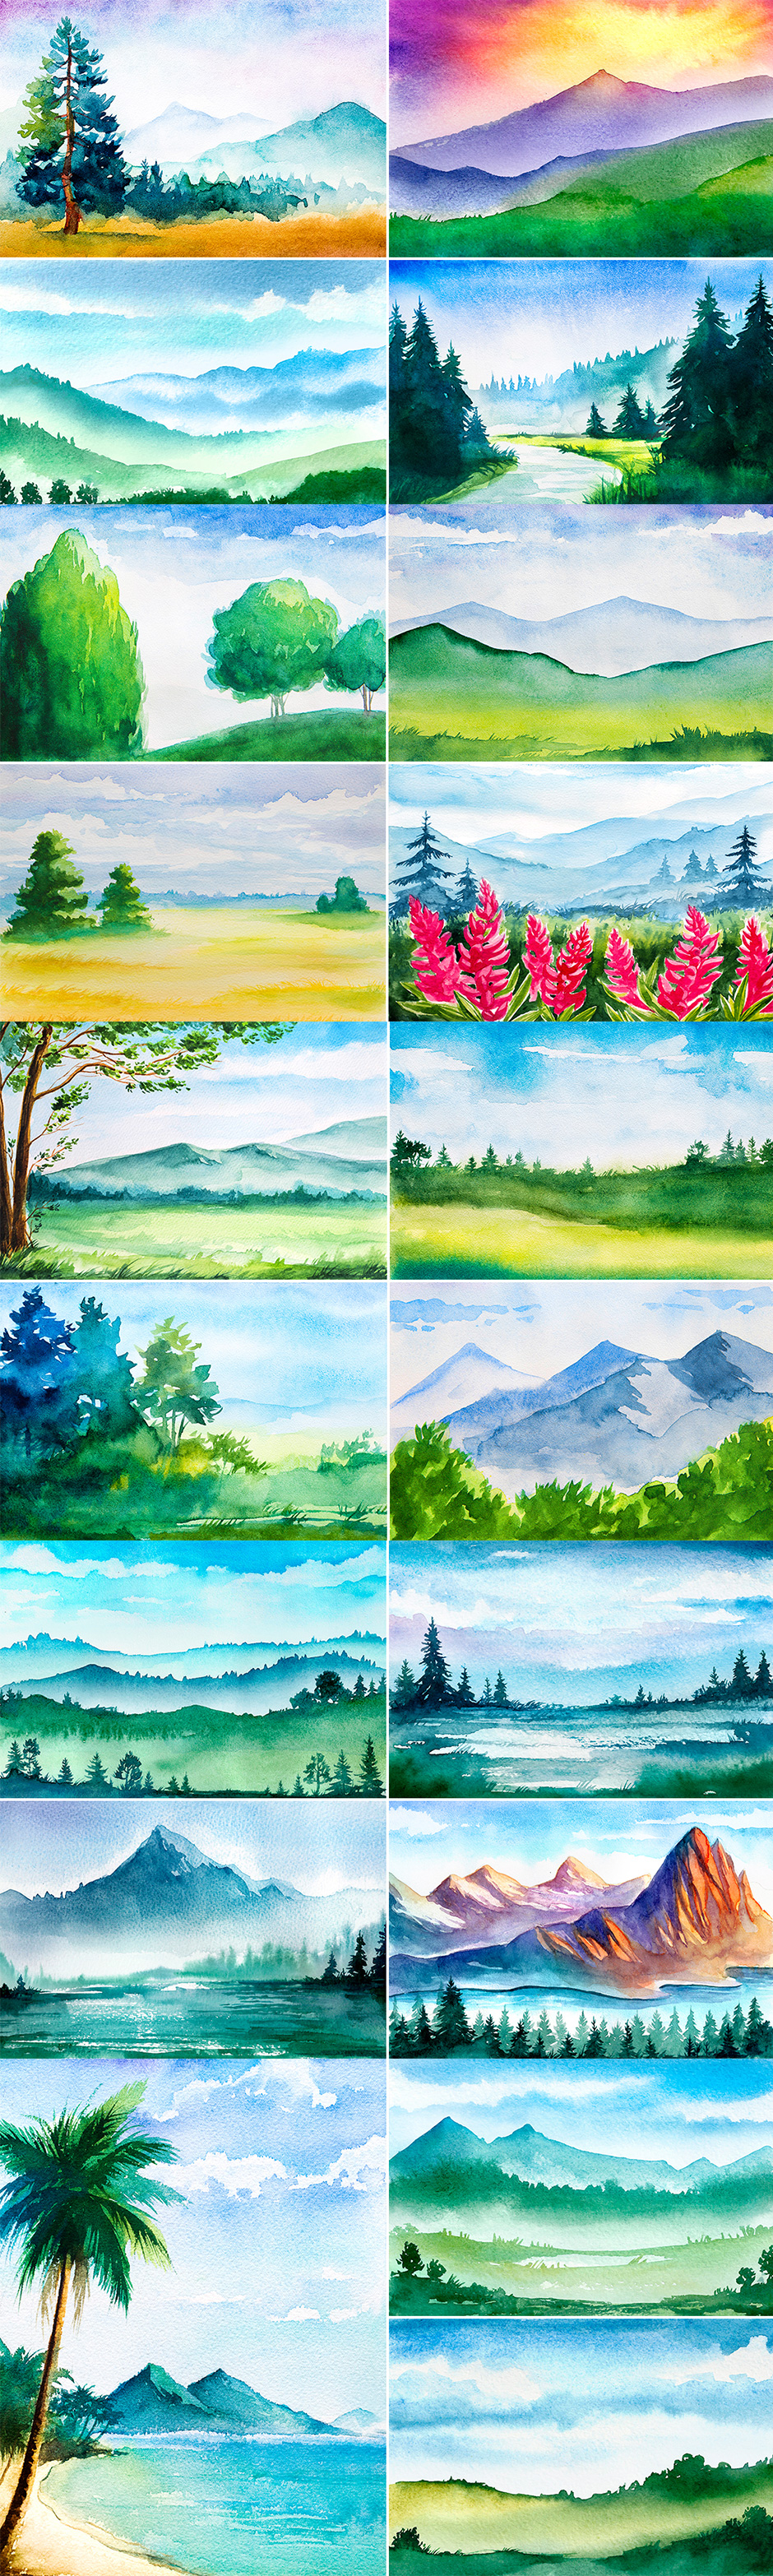 Landscape Watercolor Sketches